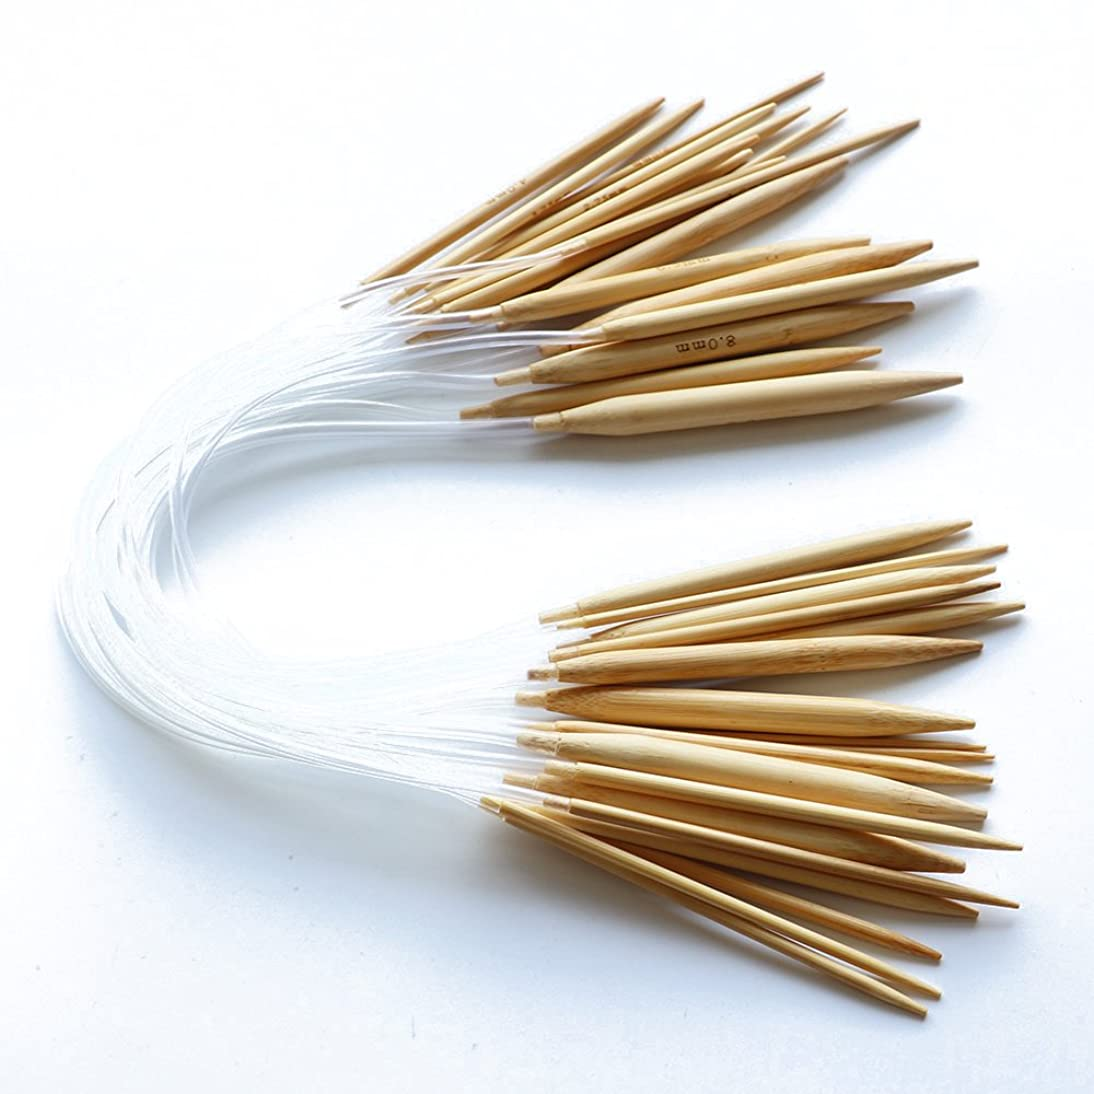 LGEGE Bamboo Circular Knitting Needles Smoothe Ends with Clear Plastic Tube Crafts Yarn Sets Needles Kit